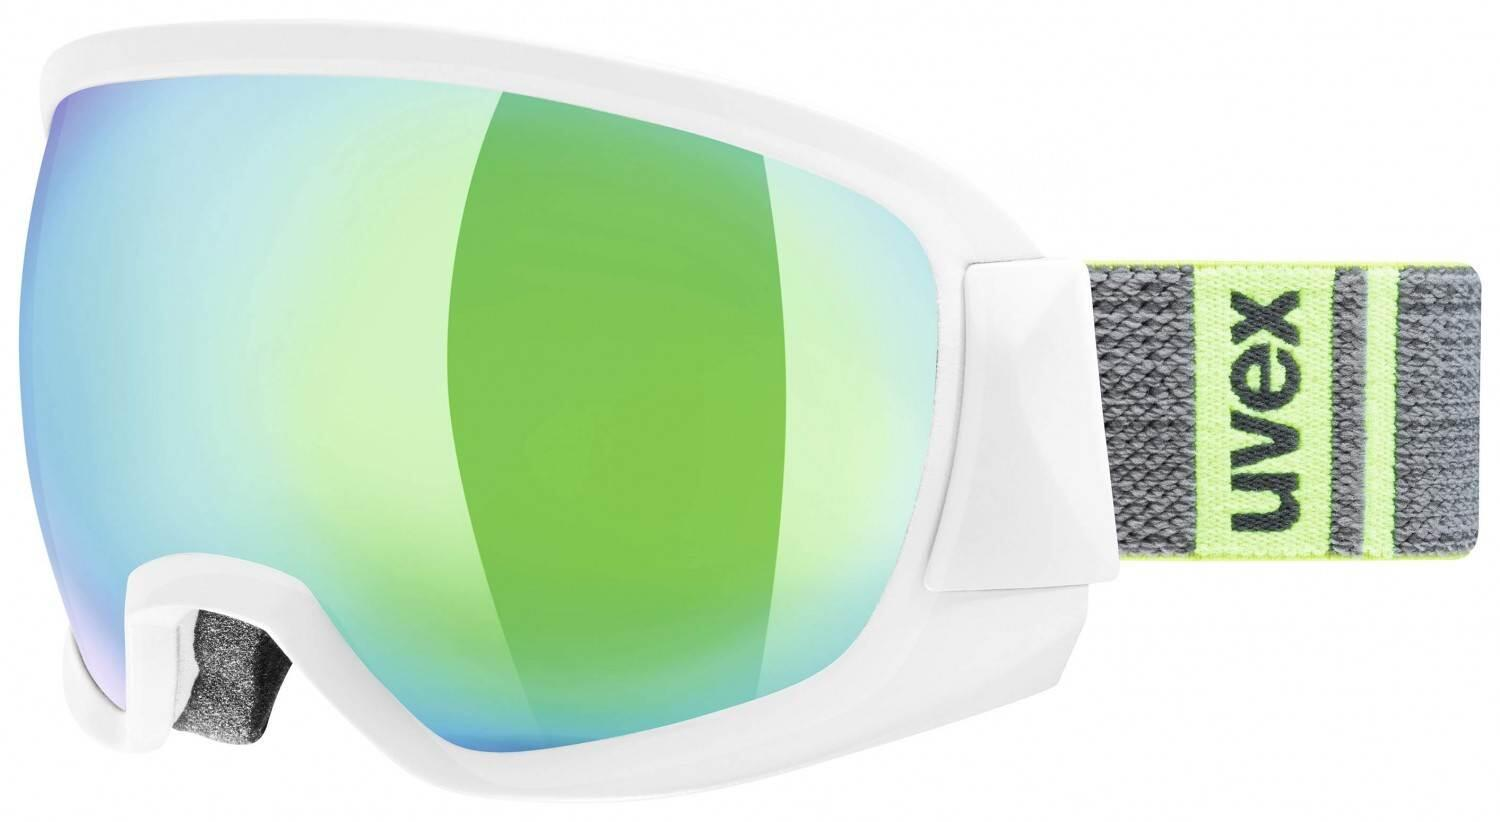 uvex-contest-full-mirror-skibrille-farbe-1026-white-mat-mirror-green-clear-s3-